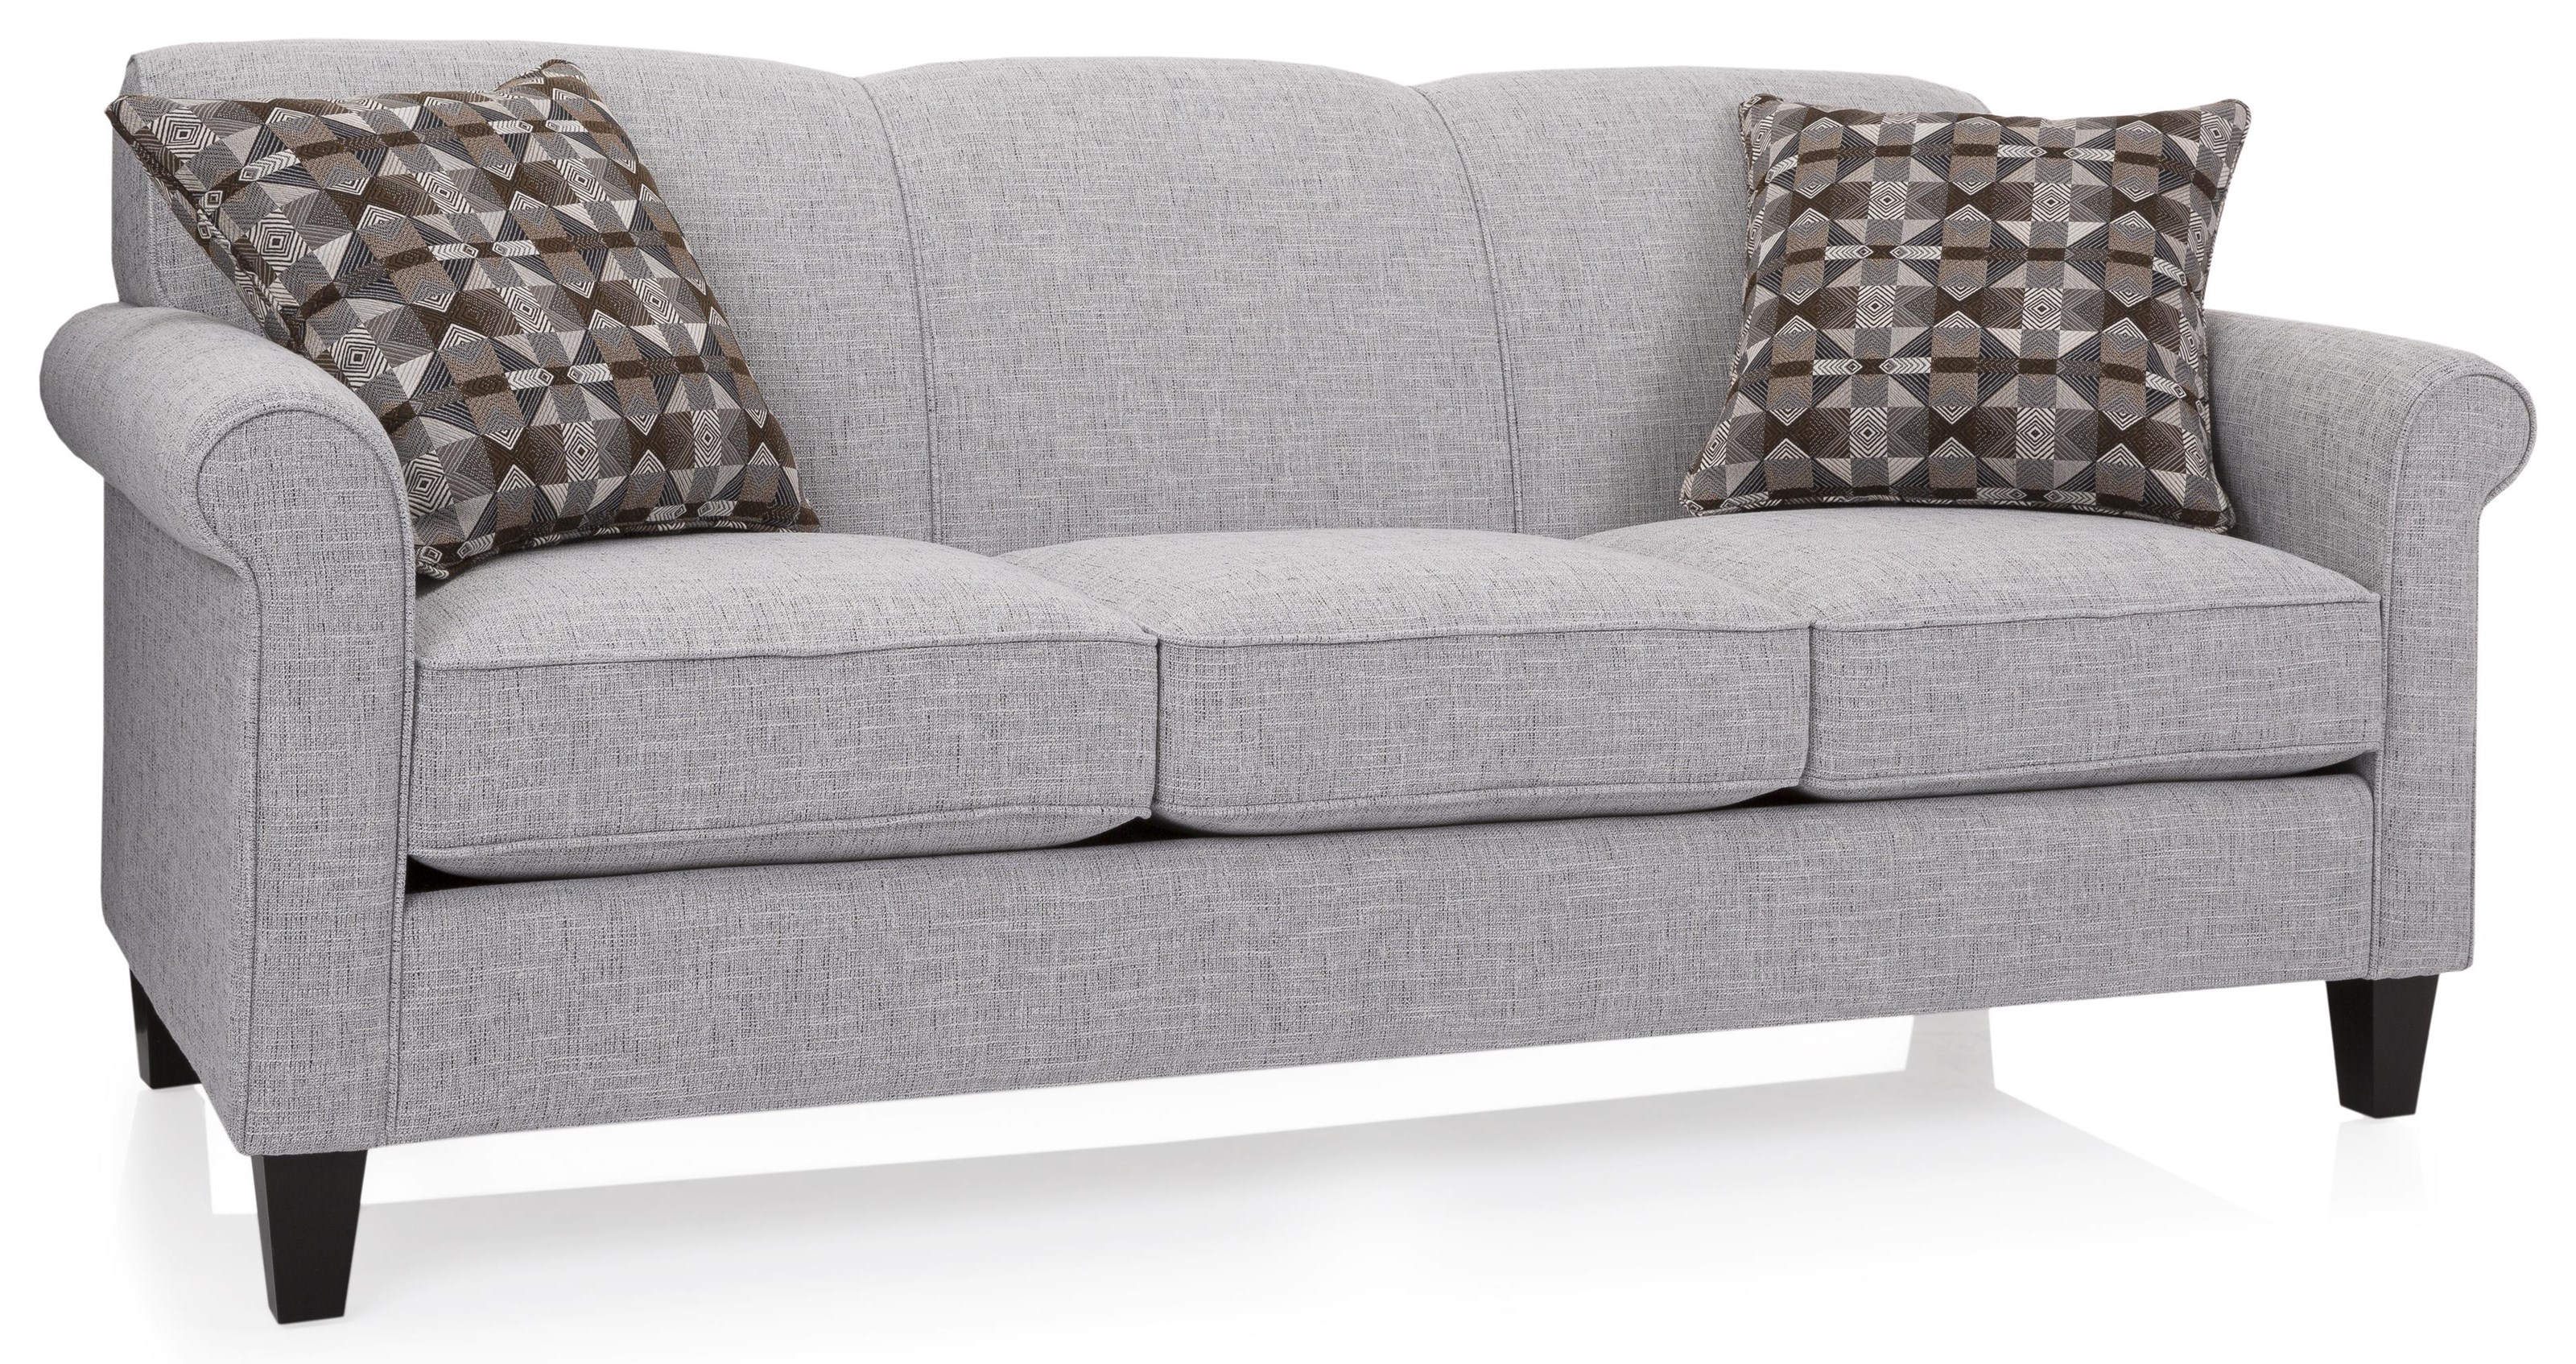 2963 Sofa by Taelor Designs at Bennett's Furniture and Mattresses